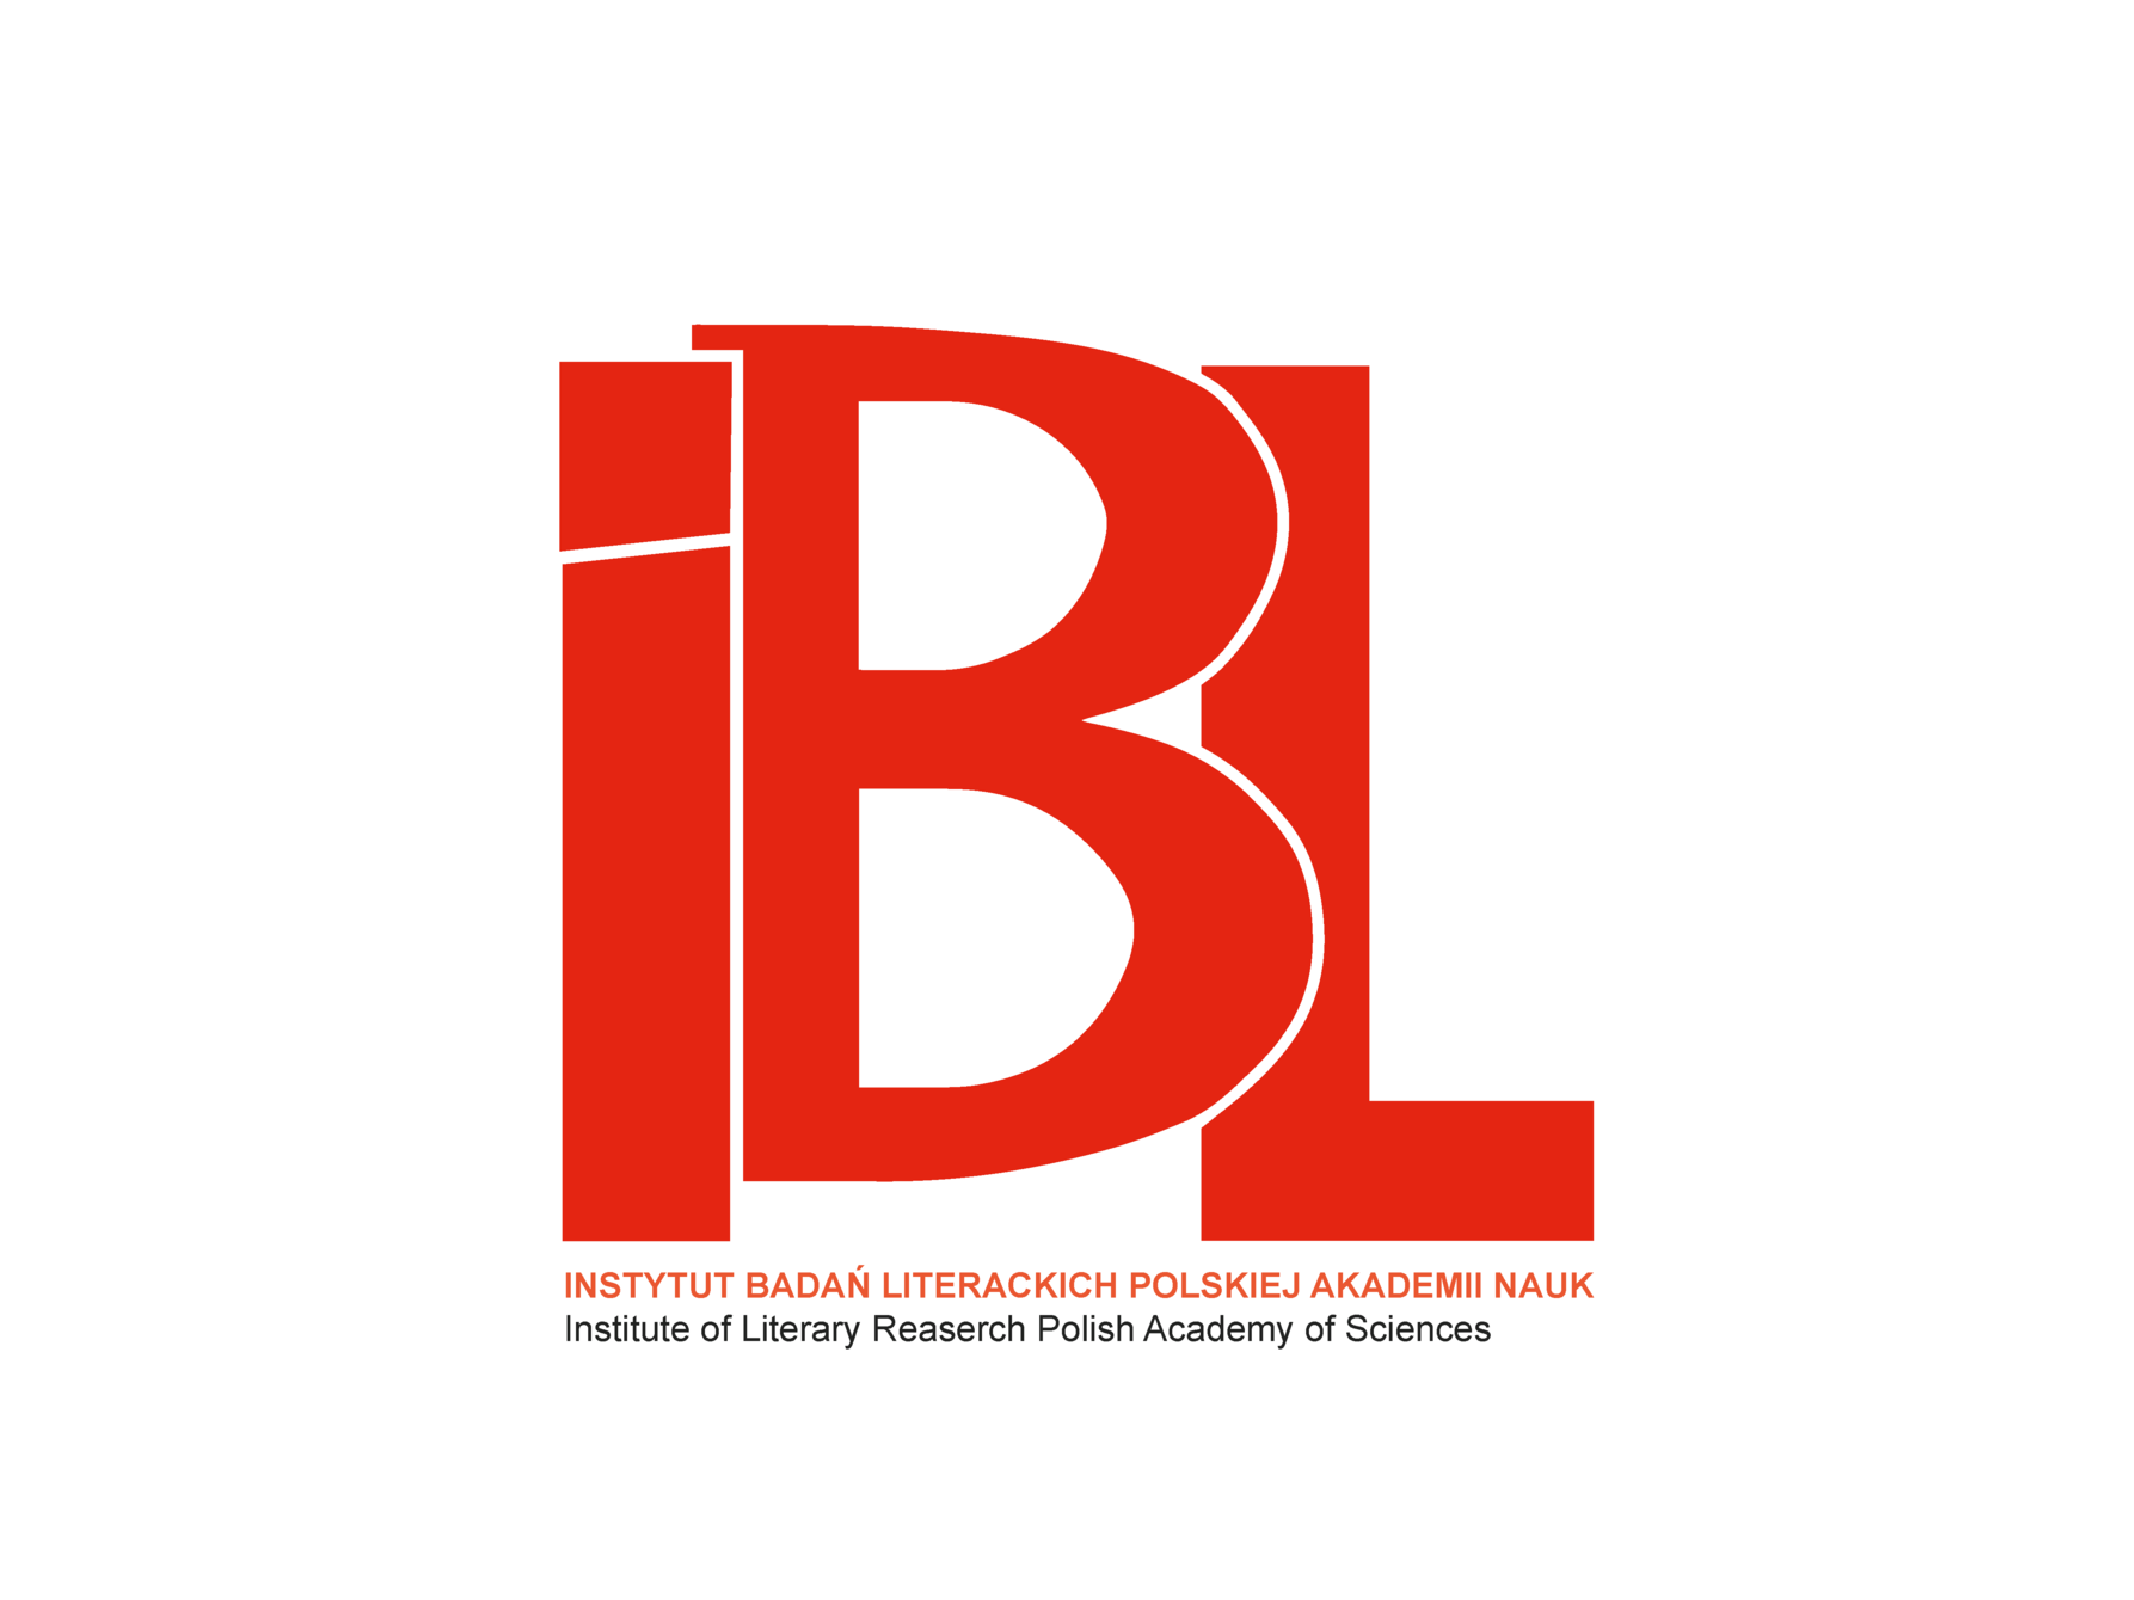 TRIPLE partner logo - Institute of Literary Research of the Polish Academy of Sciences (IBL PAN)